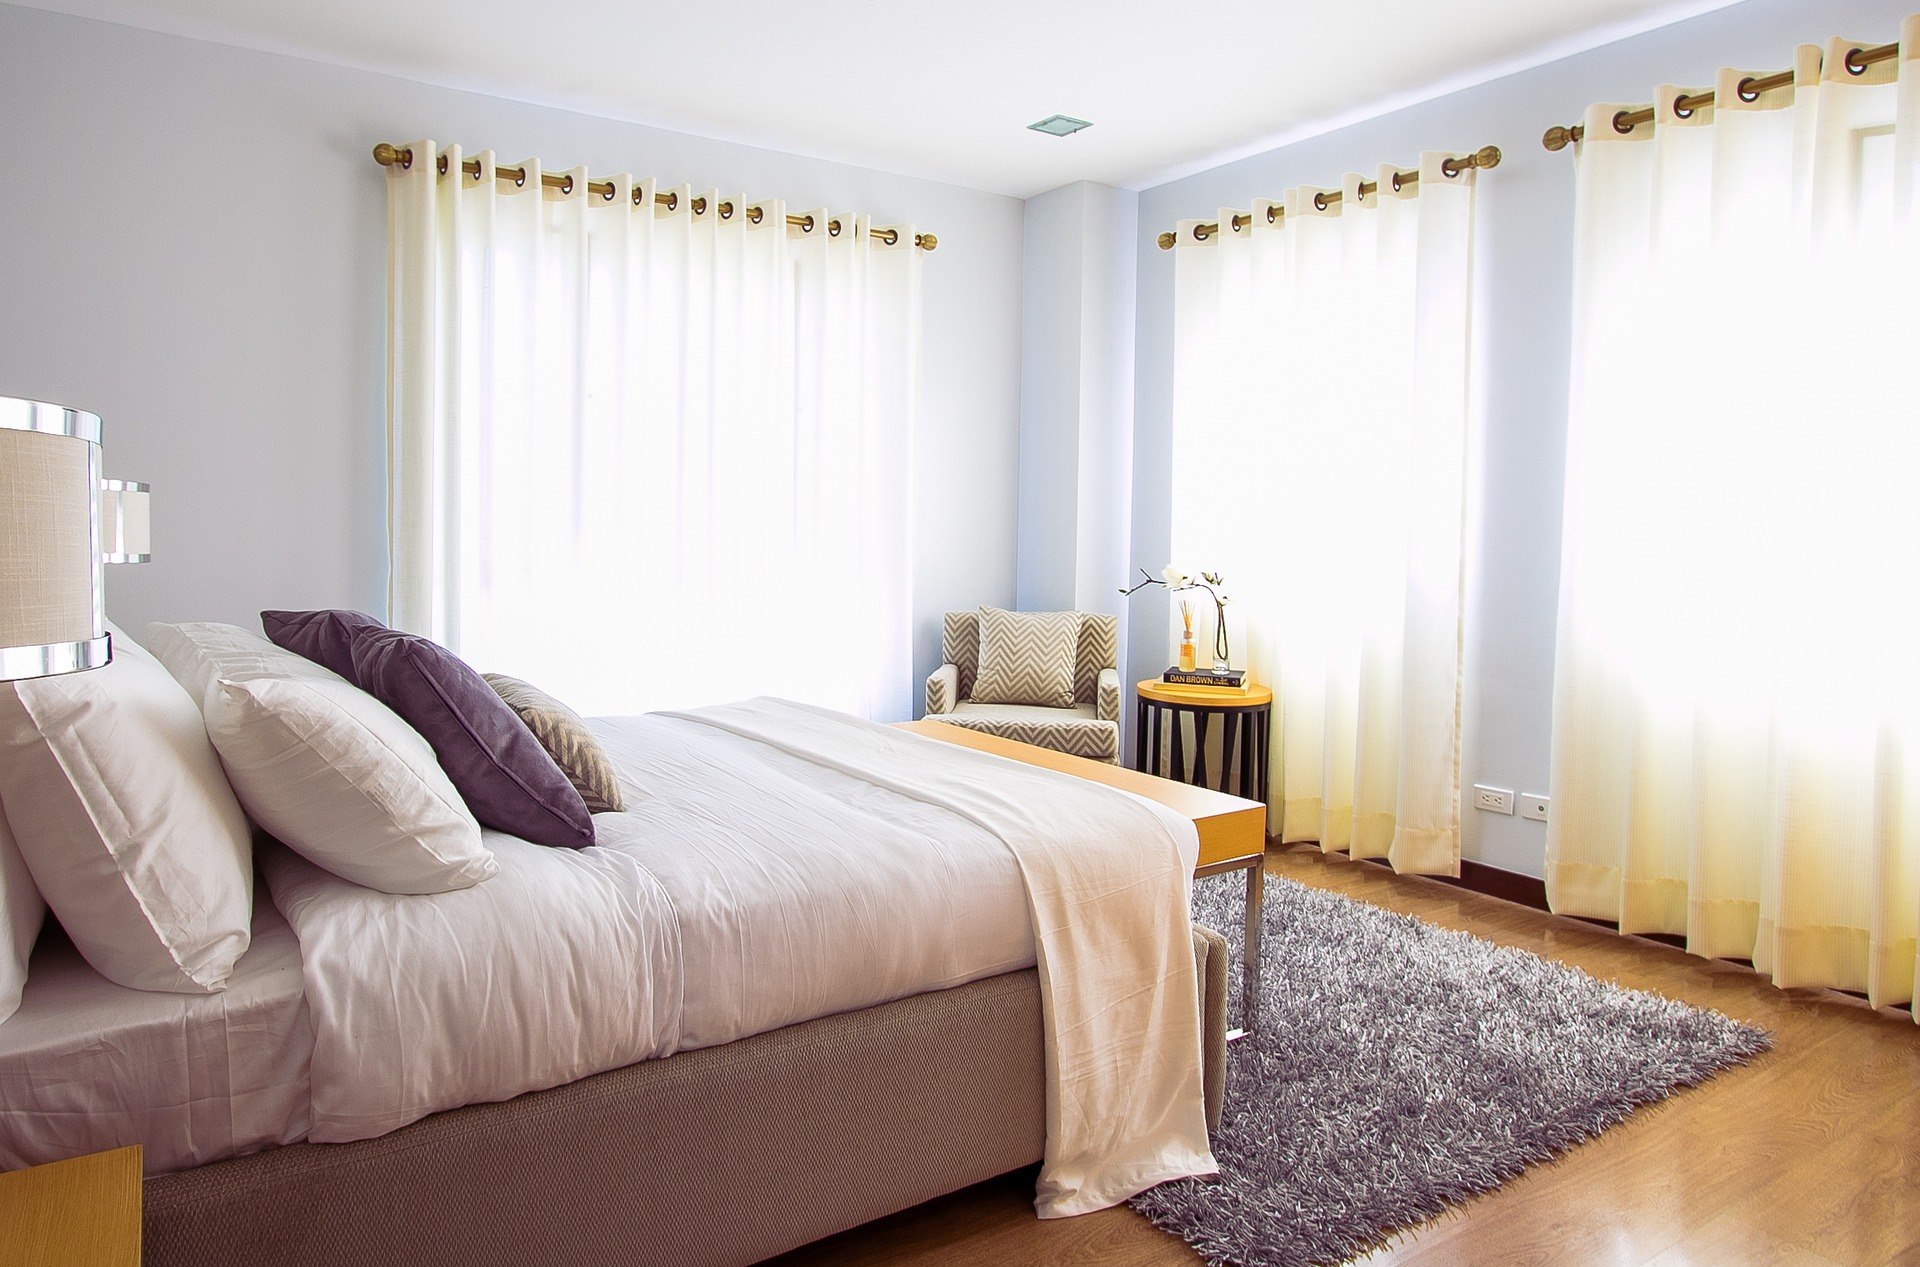 These curtains are just short of the floor, keeping them clean, and clear of any dirt.